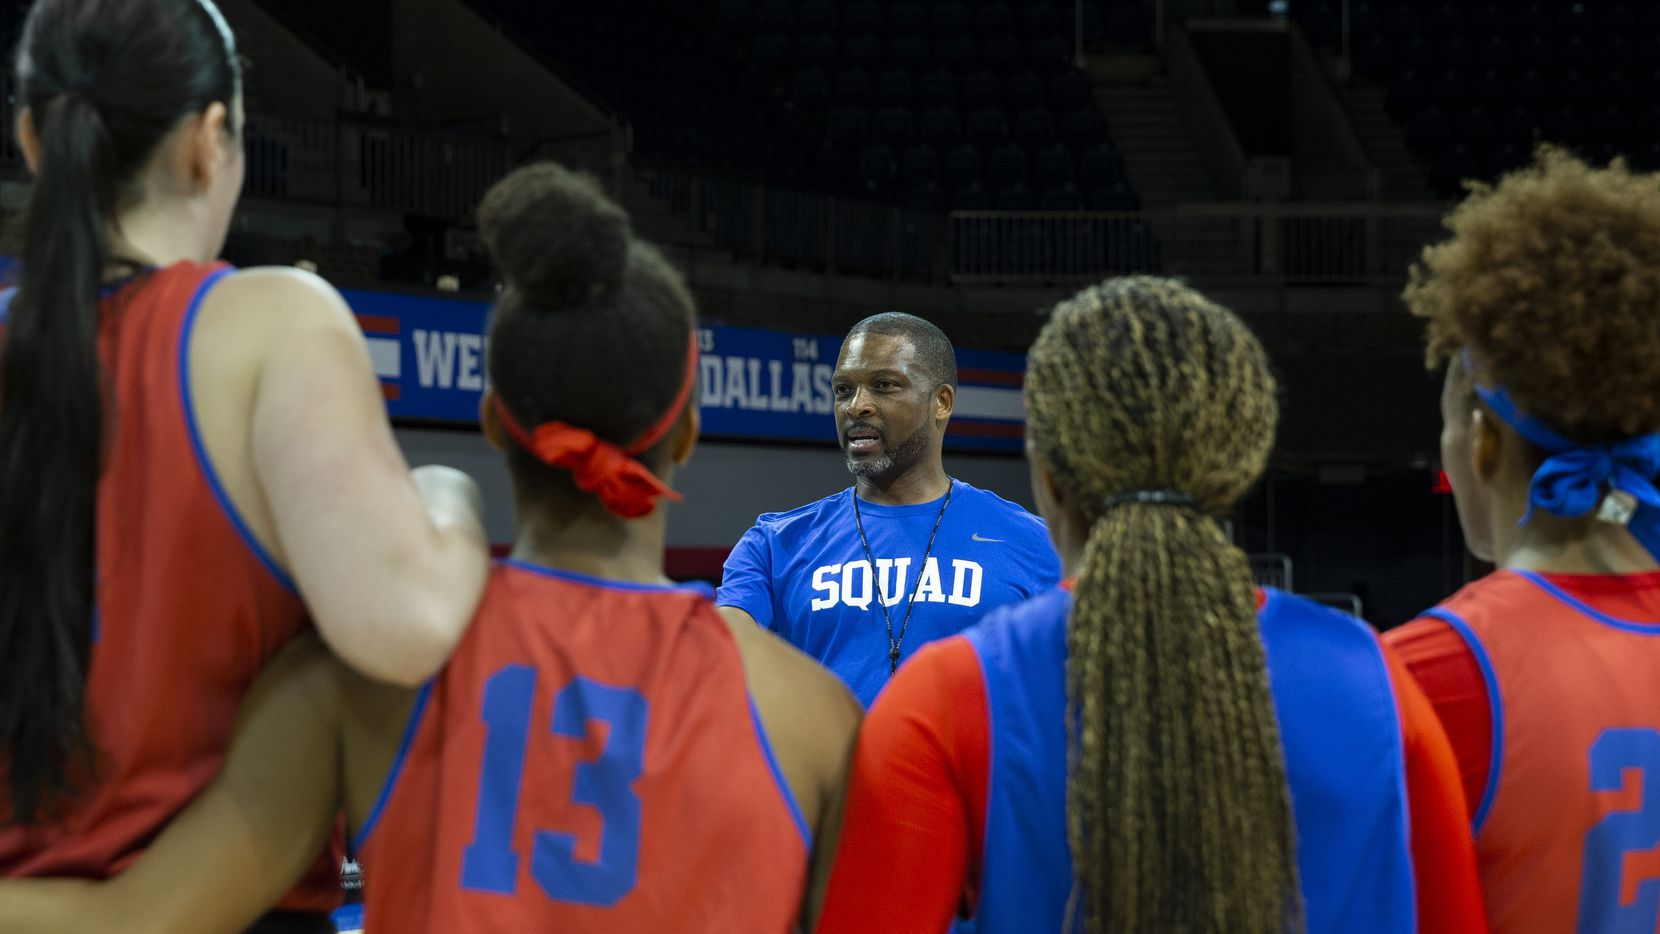 Travis Mays, head coach of SMU women's basketball, gives final directions to his players to close out a team practice at the Moody Coliseum on Friday, Jan. 3, 2020. The SMU women's basketball team faced the No. 1 ranked University of Connecticut Huskies on Sunday, but were defeated 80-42. (Lynda M. Gonzalez/The Dallas Morning News)